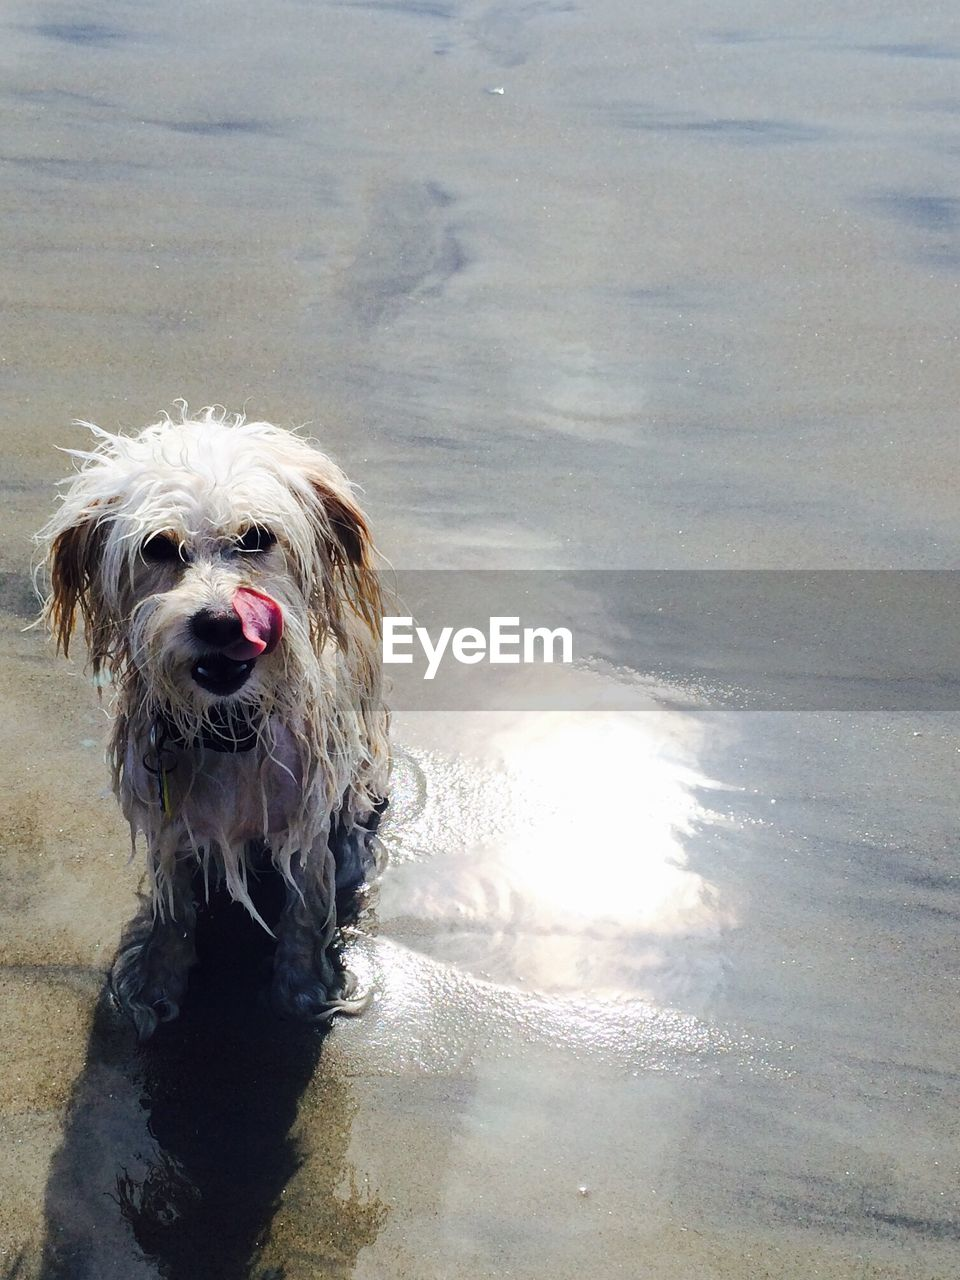 canine, dog, one animal, pets, domestic, domestic animals, mammal, animal, animal themes, water, vertebrate, wet, portrait, motion, nature, day, looking at camera, no people, beach, outdoors